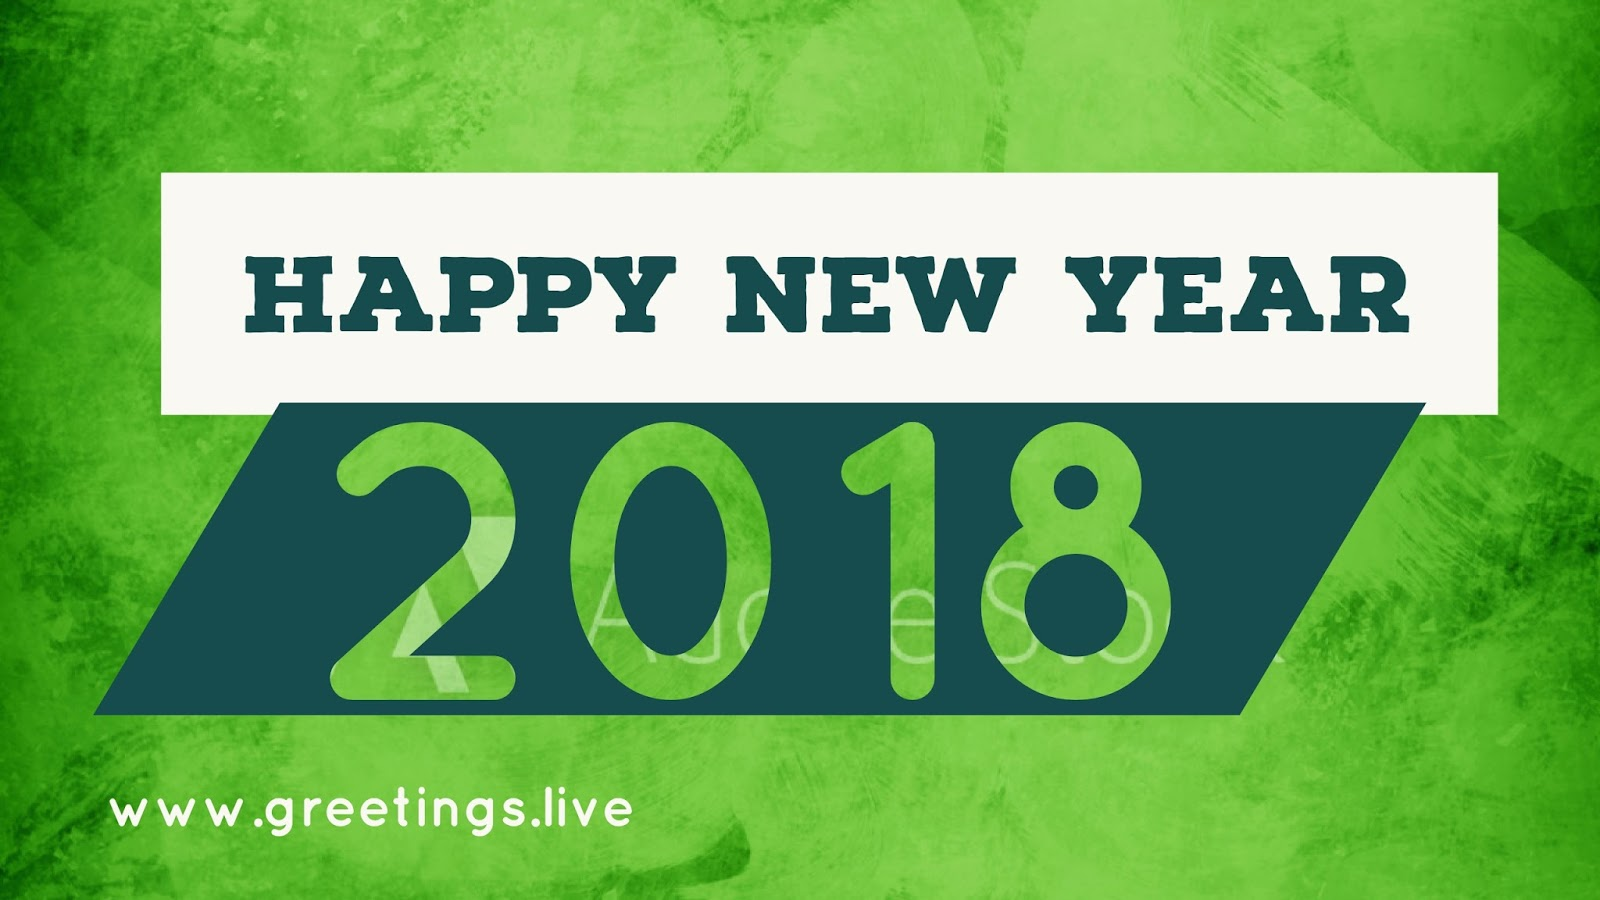 New Year Wishes In Green Color Background